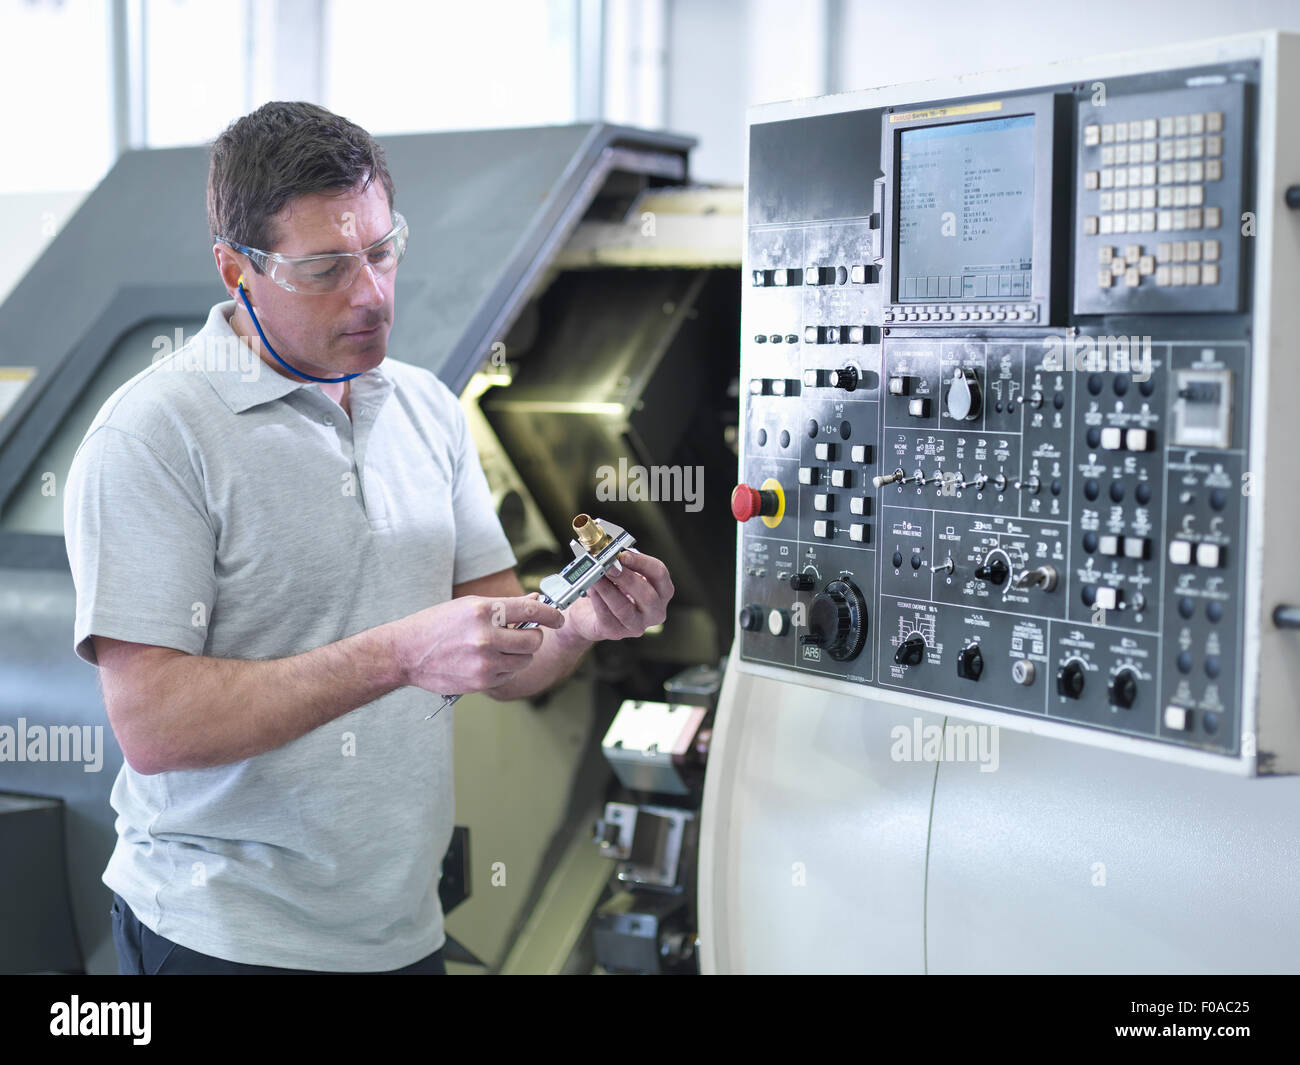 Engineer measuring part in front of CNC lathe - Stock Image